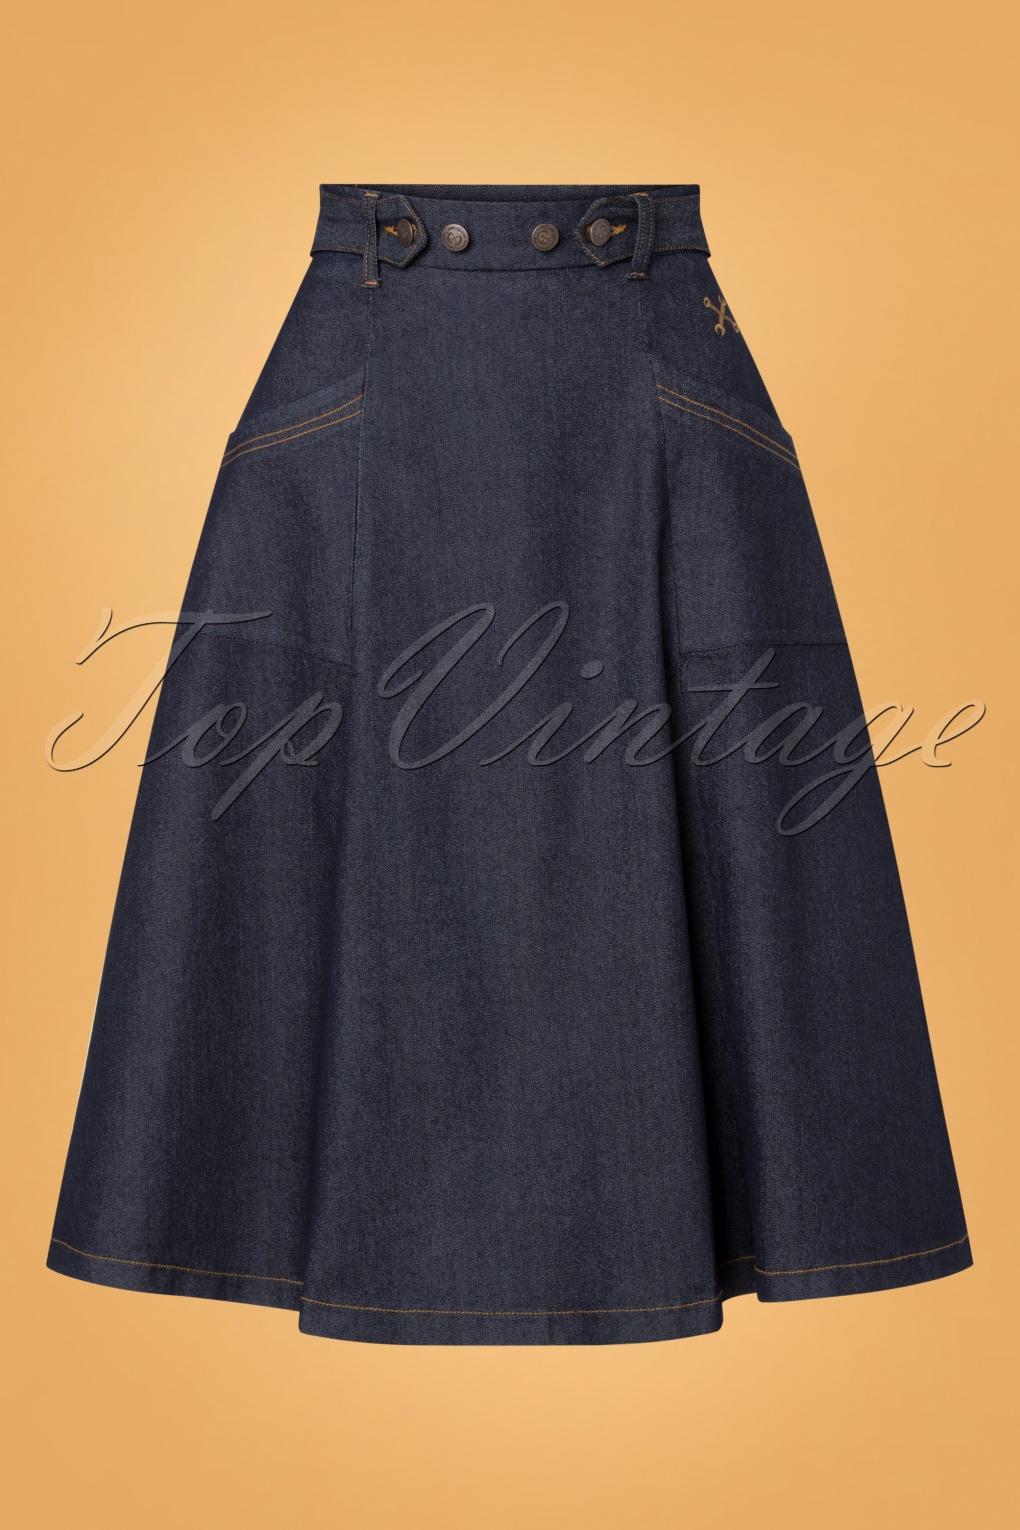 1950s Swing Skirt, Poodle Skirt, Pencil Skirts 50s Workwear Denim Skirt in Dark Blue £54.75 AT vintagedancer.com